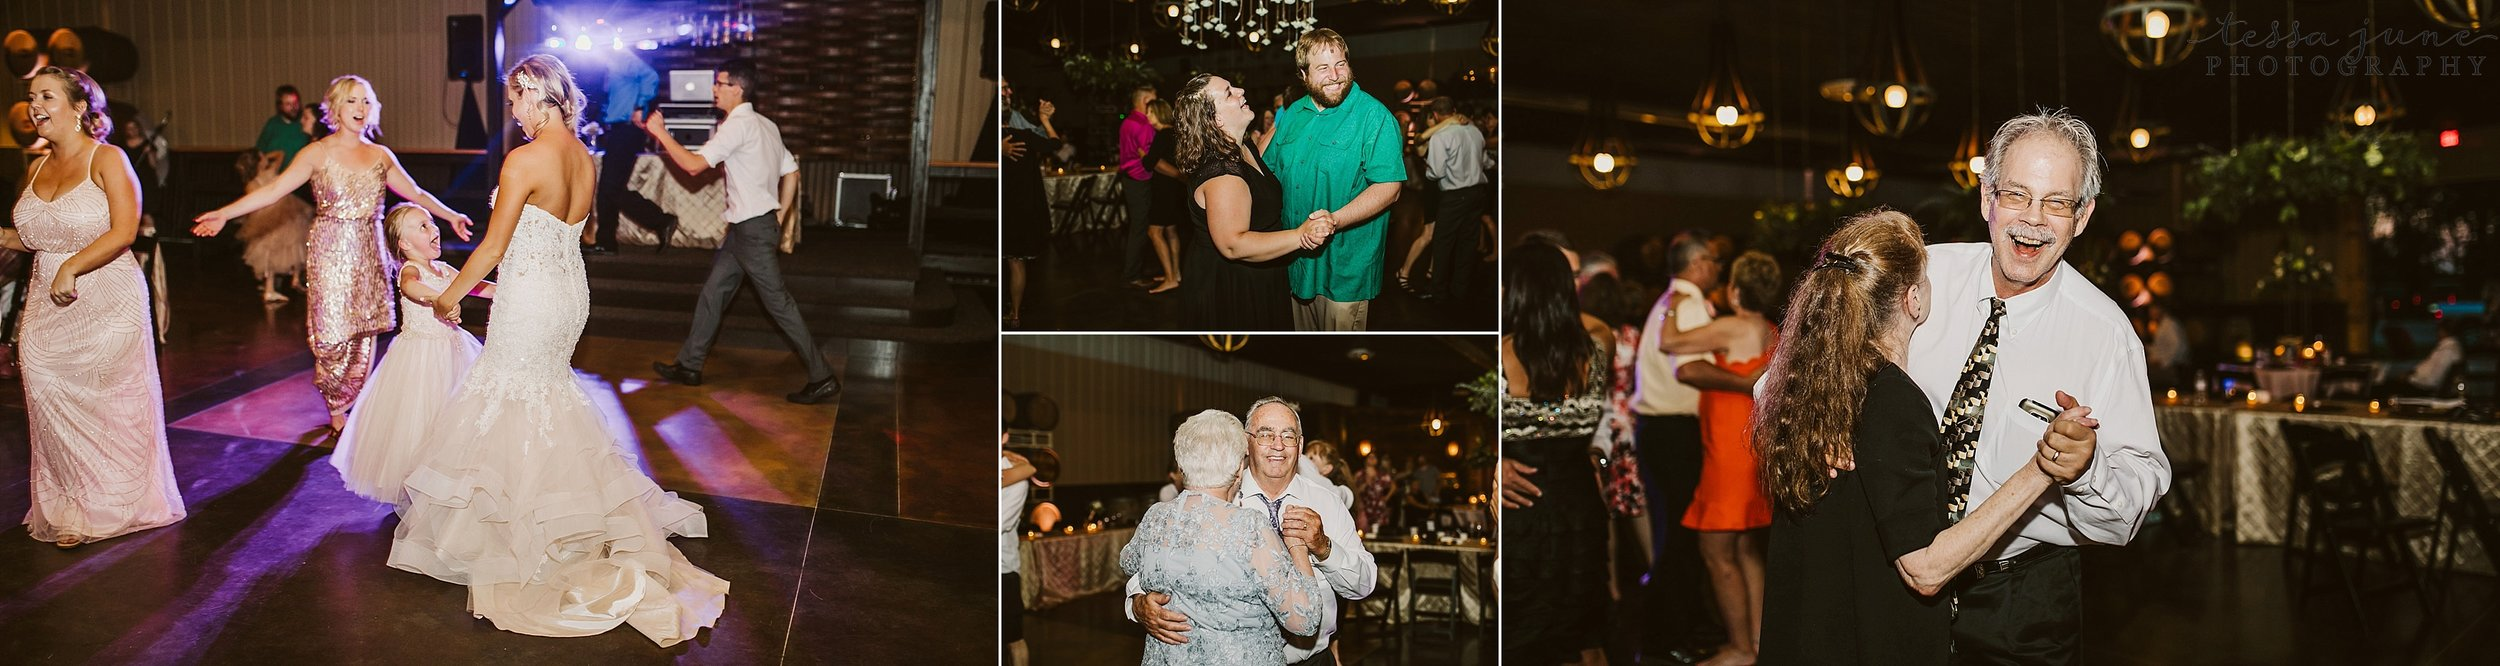 carlos-creek-winery-wedding-alexandria-minnesota-glam-elegant-floral-170.jpg